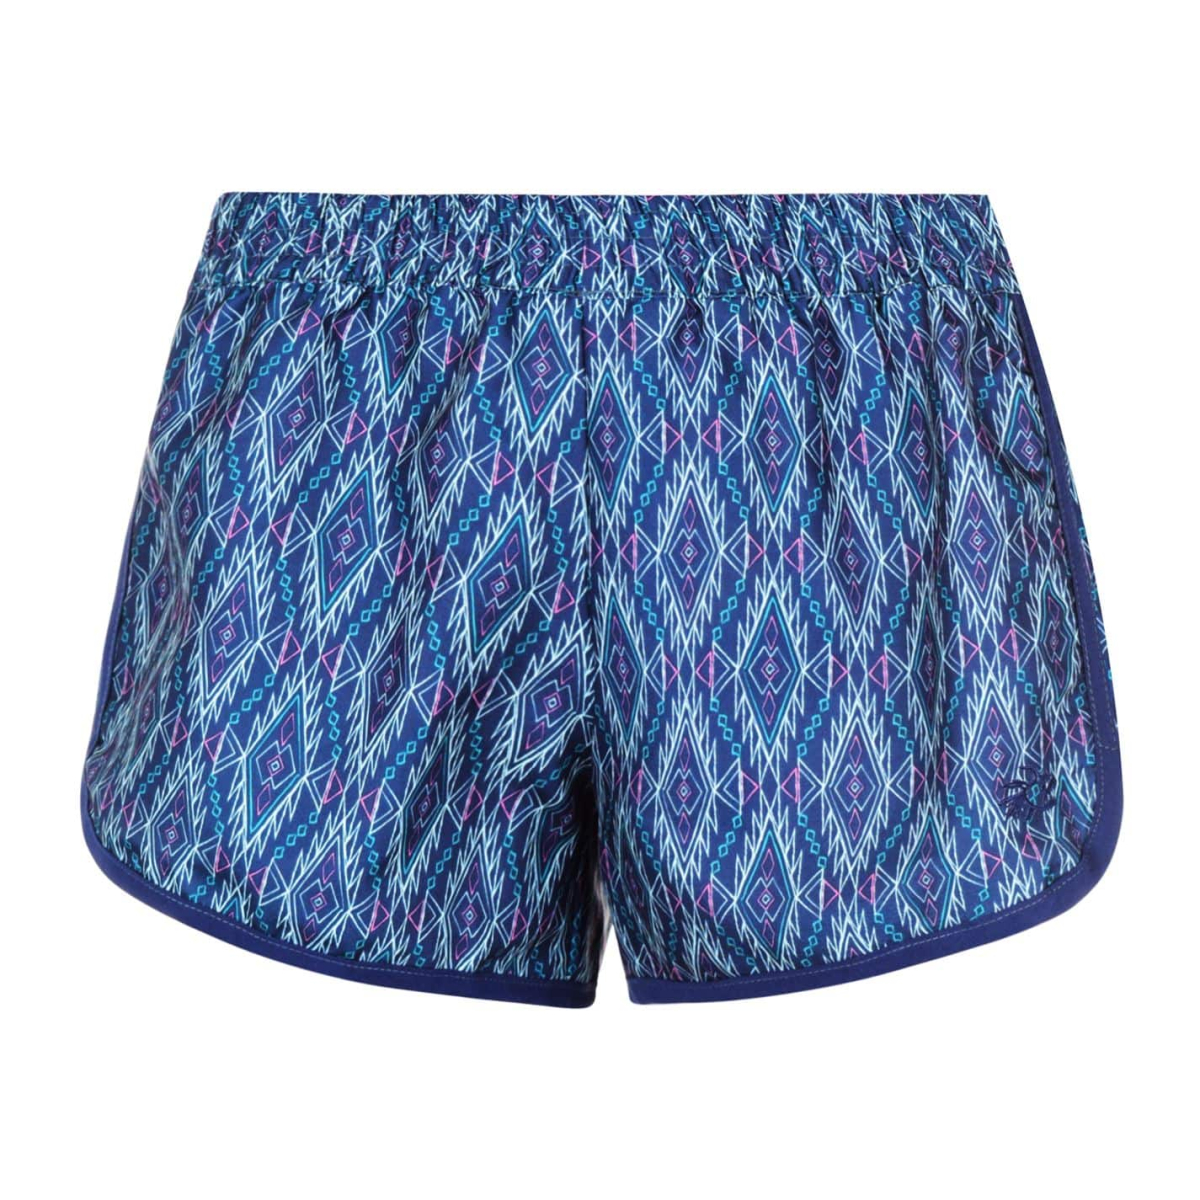 Hot Tuna Printed Swim Kurzhose Shorts Damen